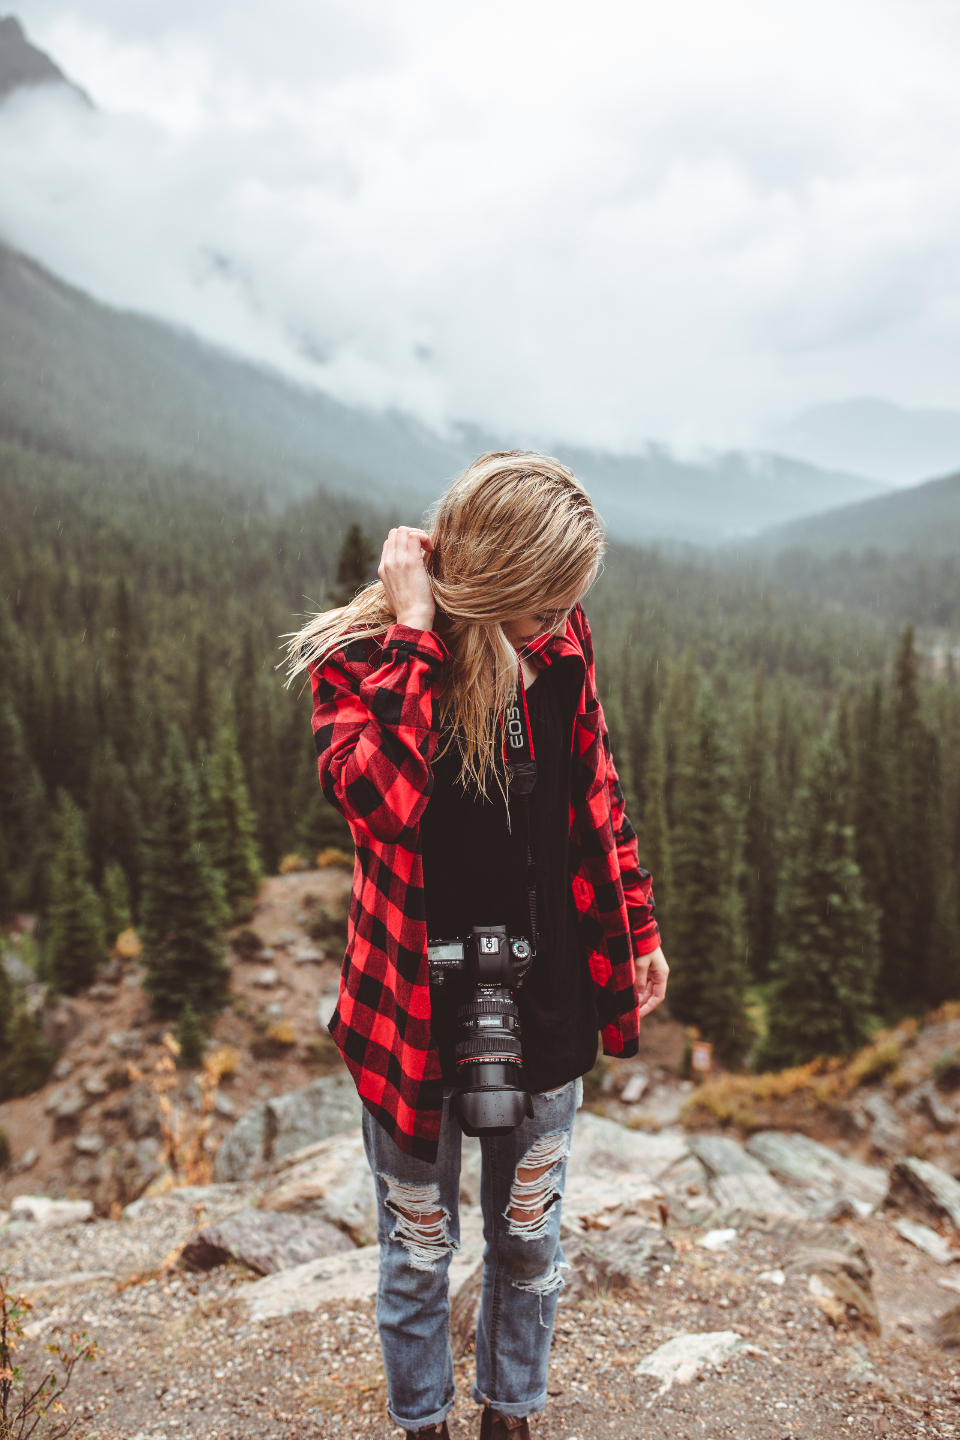 Fall Flannel Wallpaper Free Photo Of Girl Blonde Woman Stocksnap Io